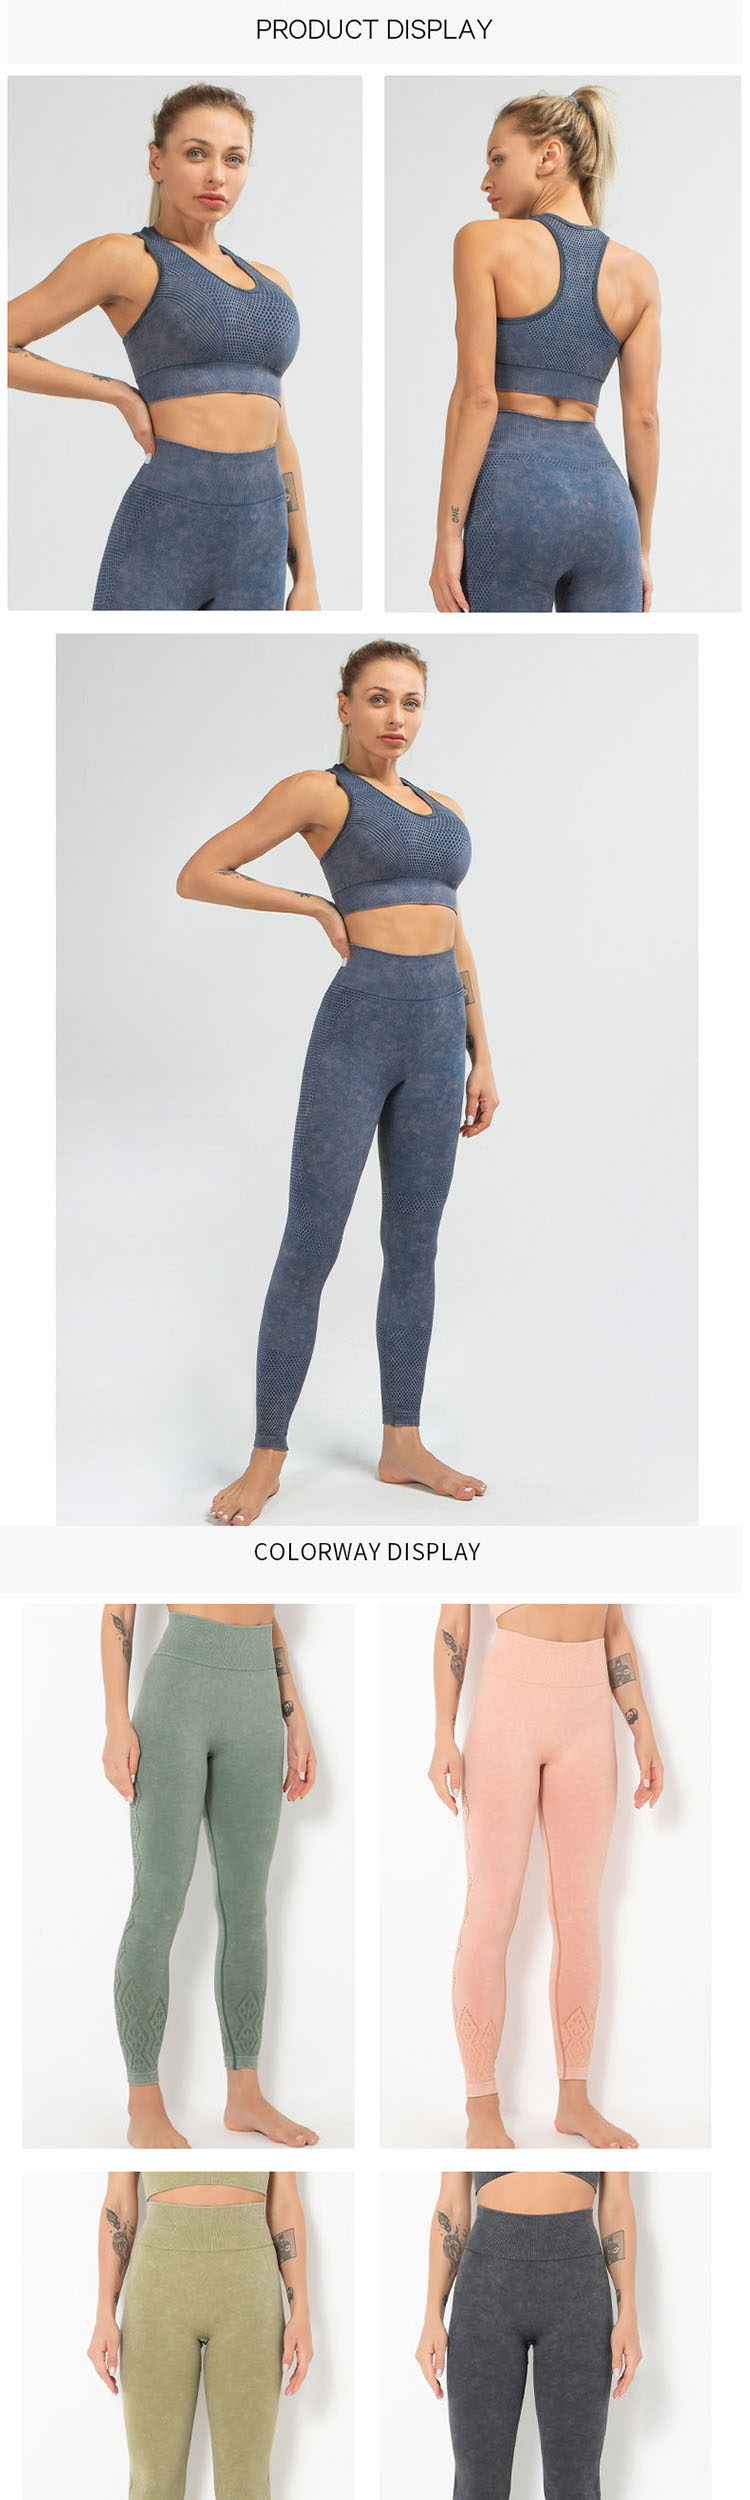 Thermal running leggings consumers are increasingly eager for personalized performance and fit